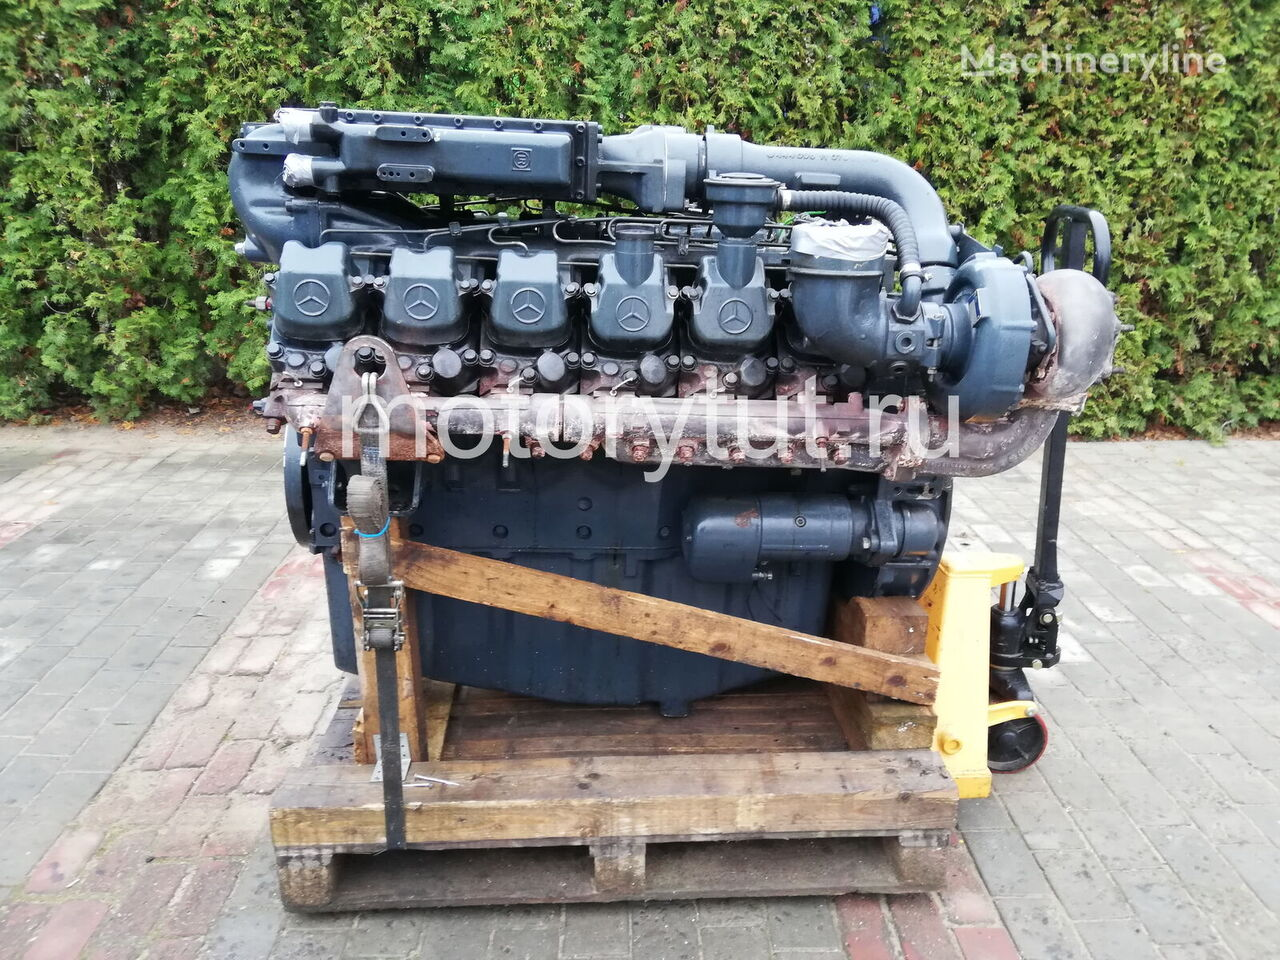 MERCEDES-BENZ OM 444 LA (444.901-501) engine for WIRTGEN 2100DC asphalt milling machine